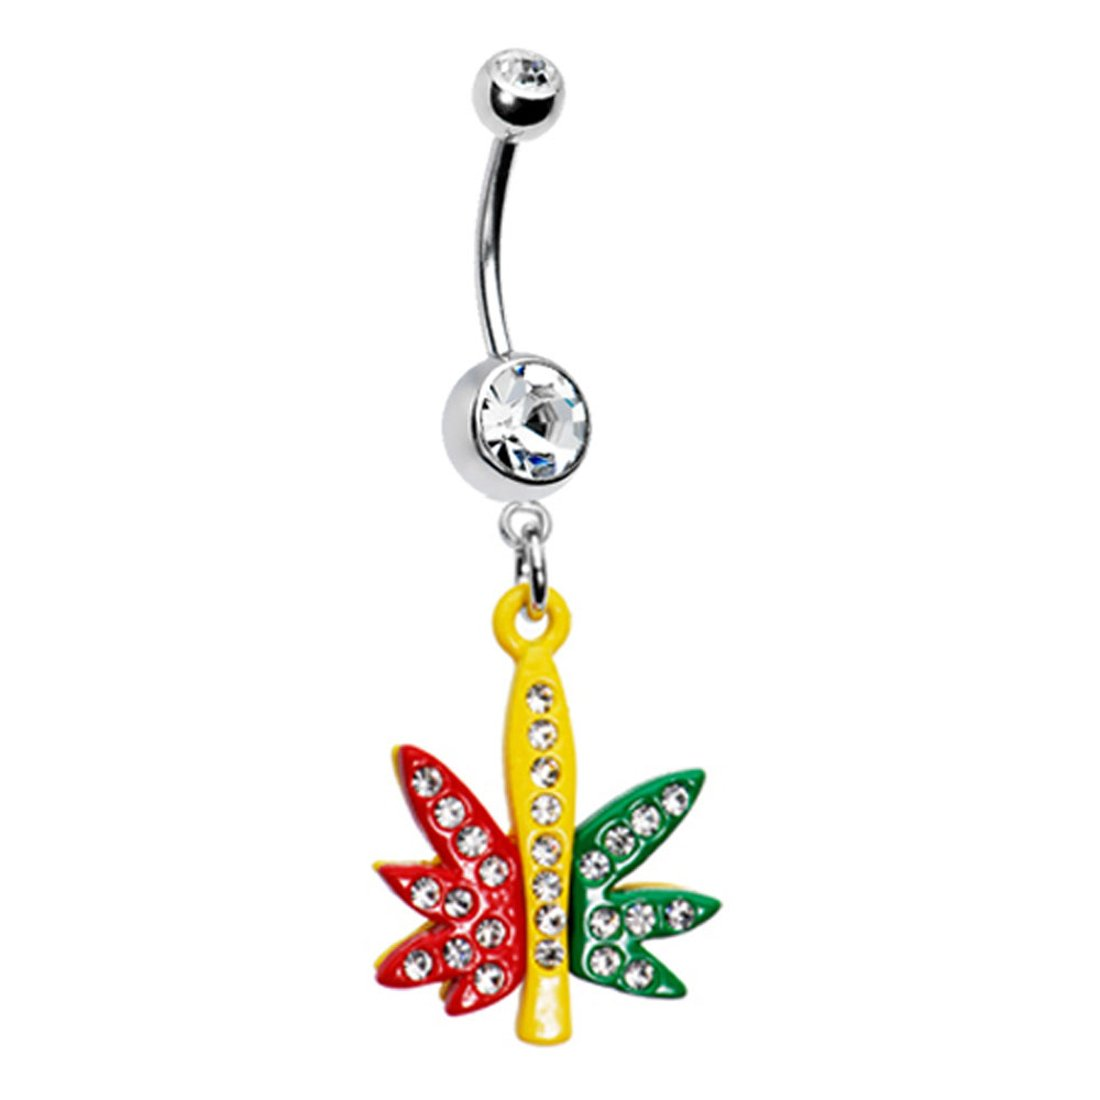 BodyJ4You Belly Button Rings Pot Leaf Dangle 14G Belly Button Ring 1.6mm Comes with Belly Retainer BN1048